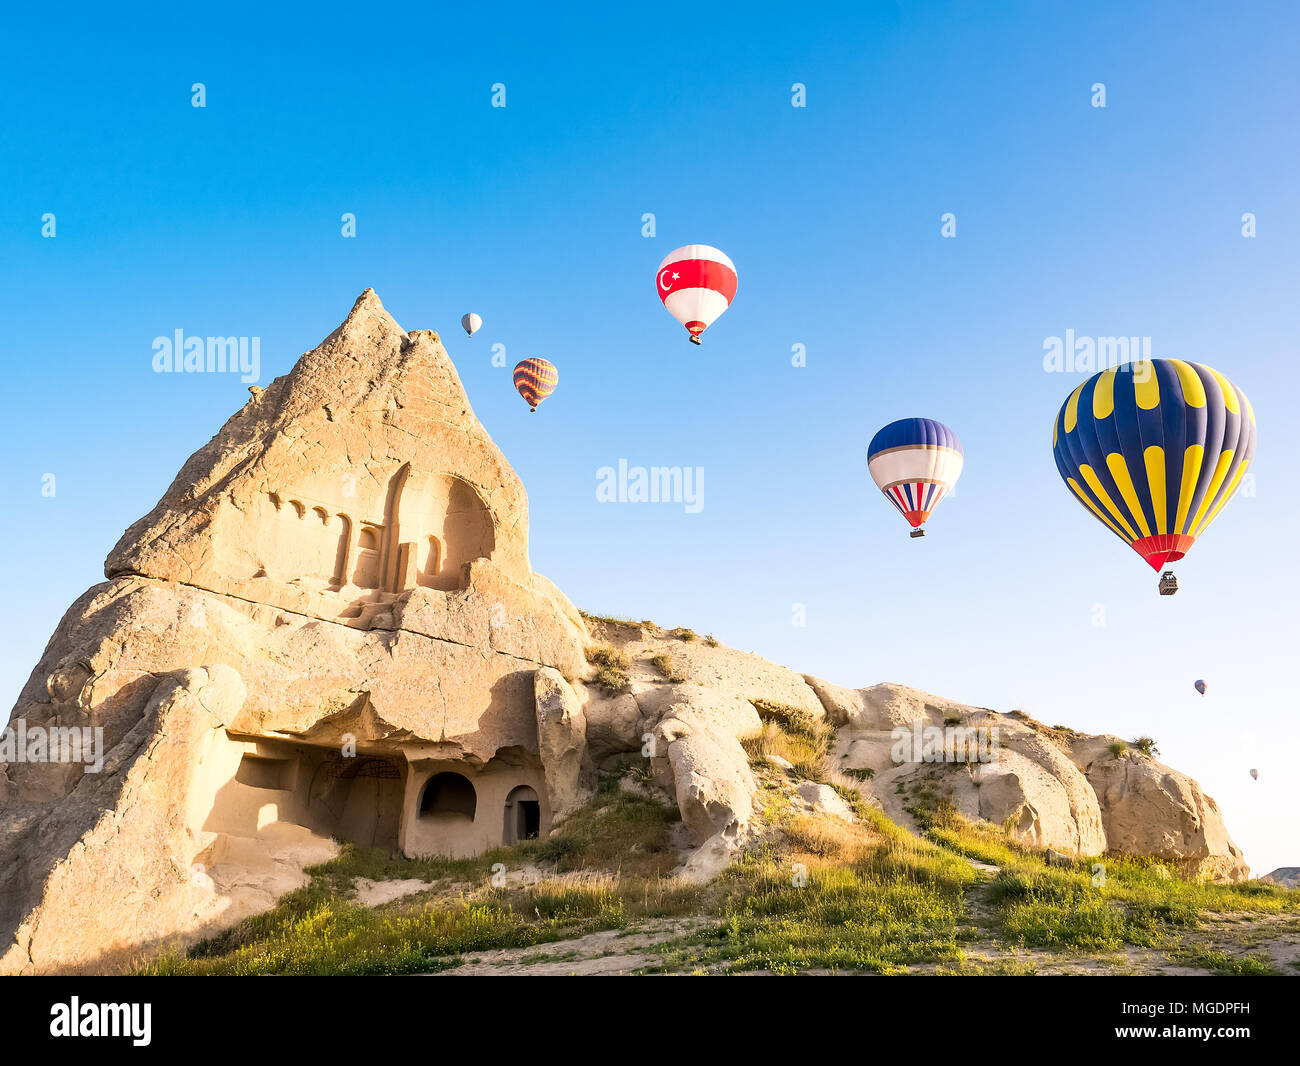 Colorful hot air balloons flying over rock landscape at Cappadocia Turkey Stock Photo